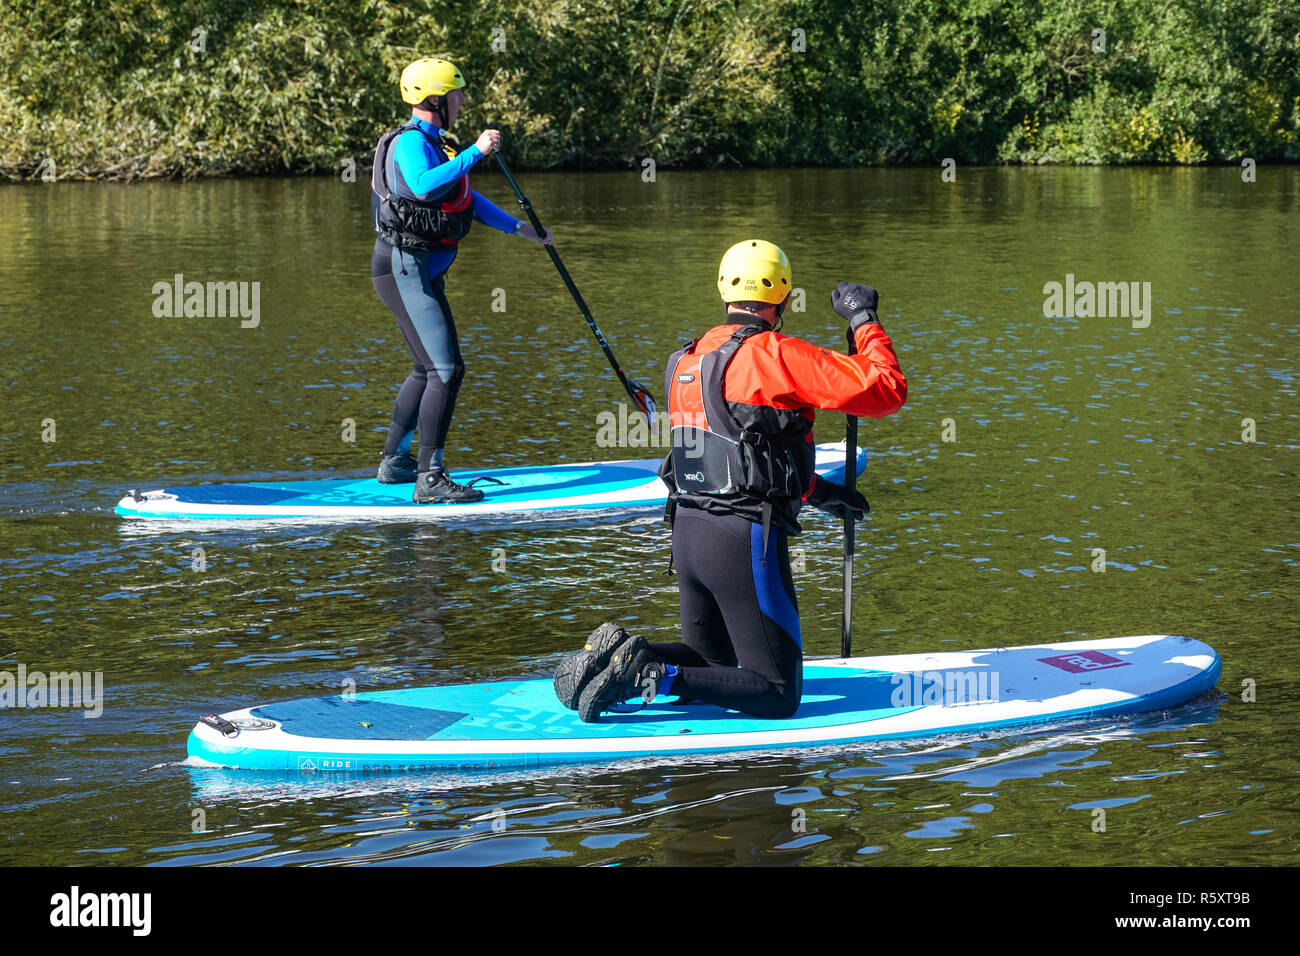 People paddleboarding on the River Thames near Medmenham, Buckinghamshire, England United Kingdom UK Stock Photo